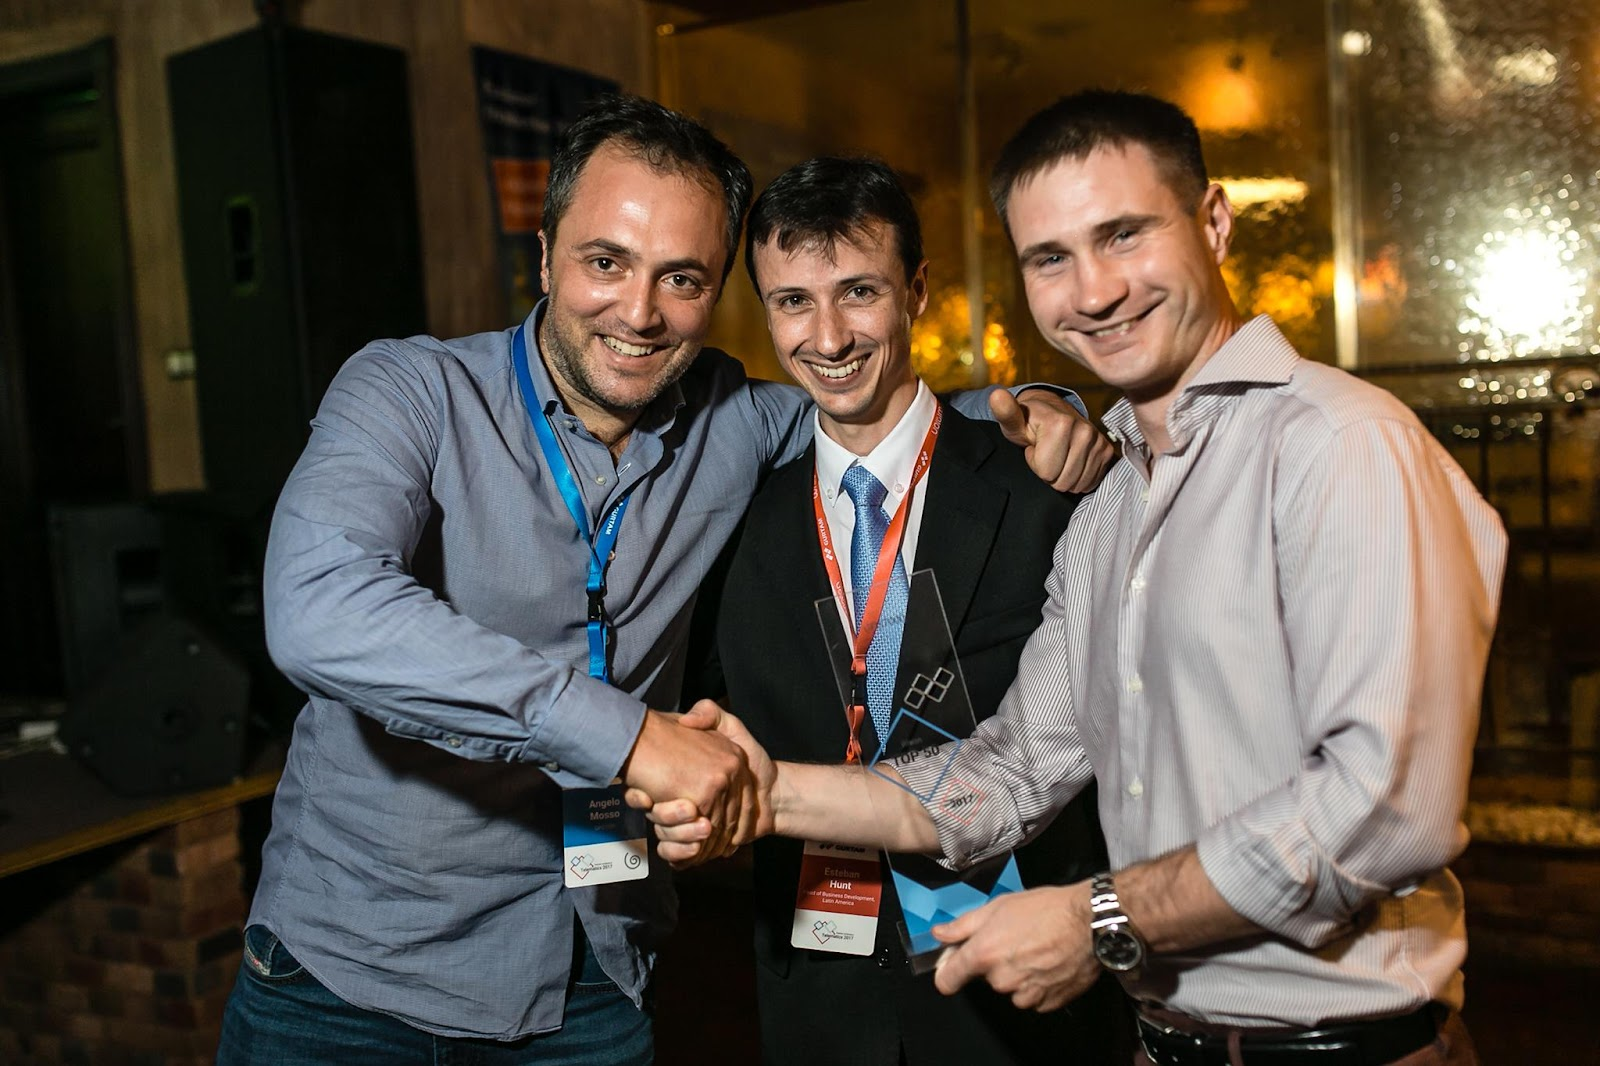 Angelo Mosso, CEO GPS7000, with Esteban Hunt and Aliaksei Schurko